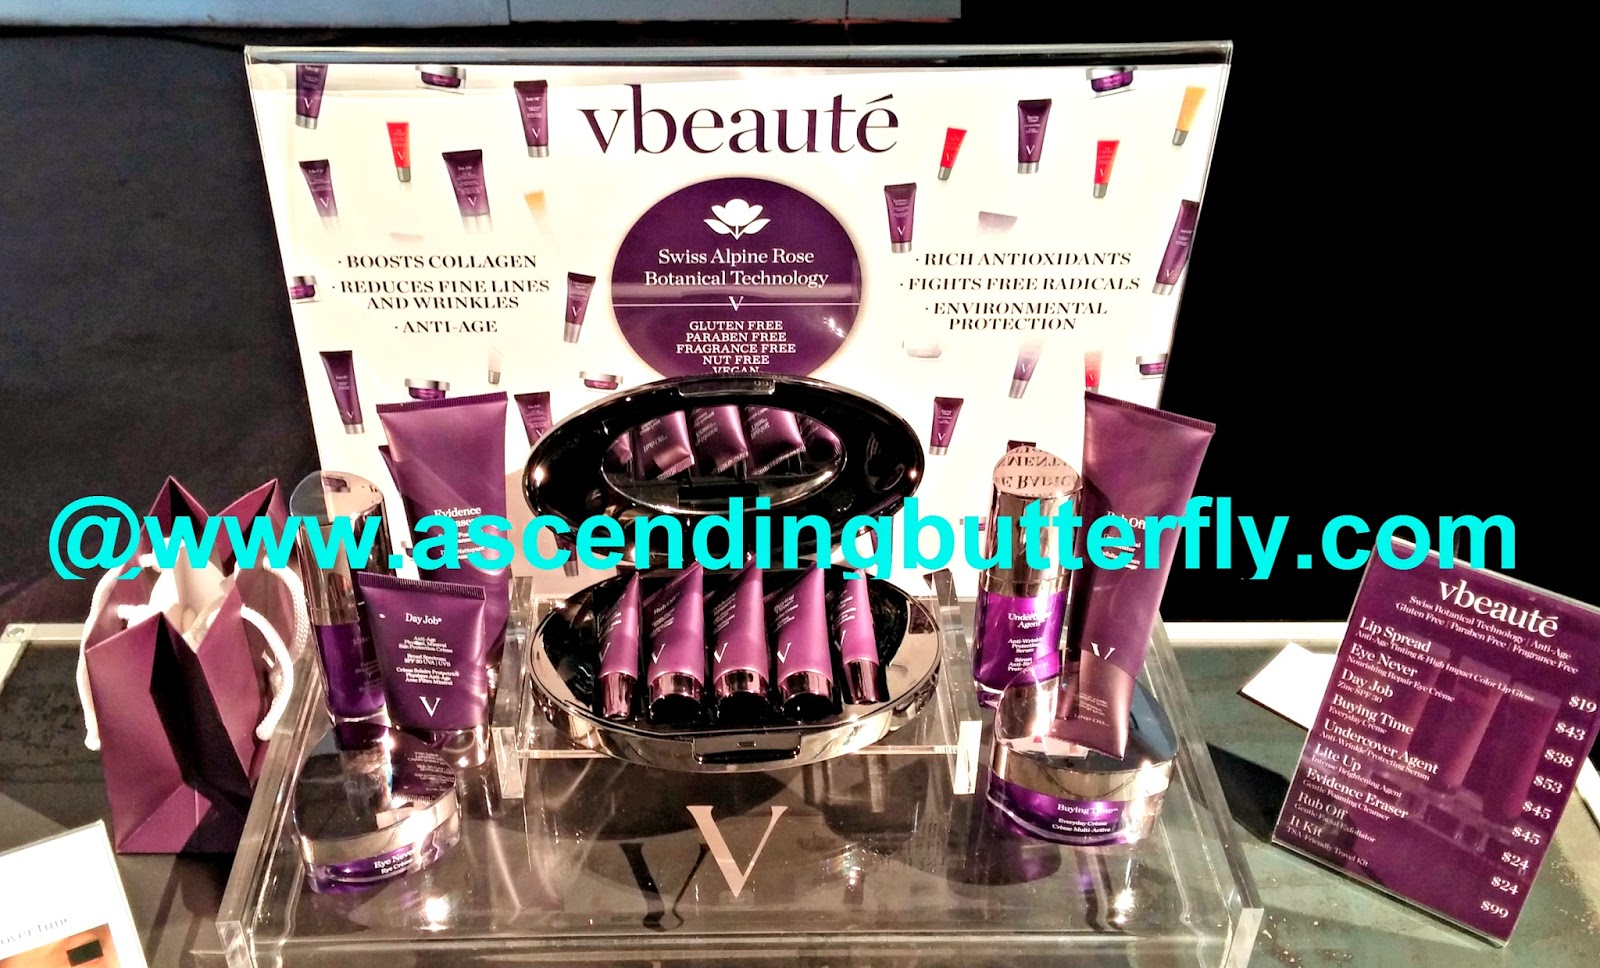 vbeaute is a vegan, gluten free, paraben free, fragrance free, nut and oat free line made for all skin types